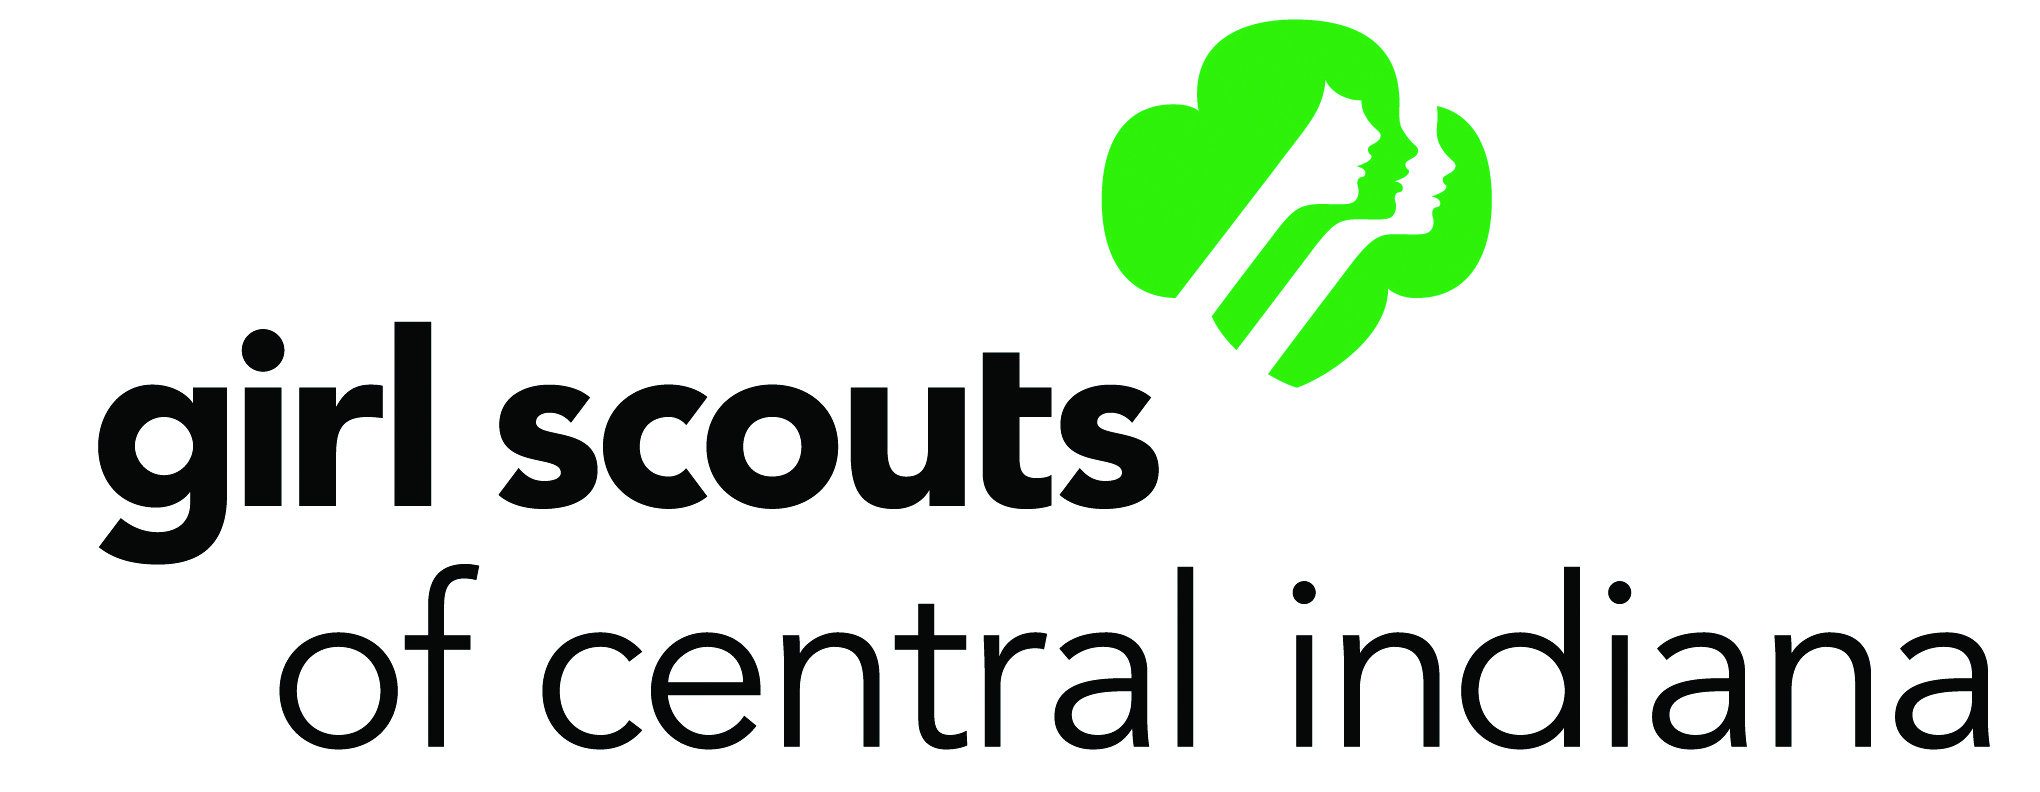 2040x792 Girl Scouts Of Central Indiana Vs. Boy Scouts Of America